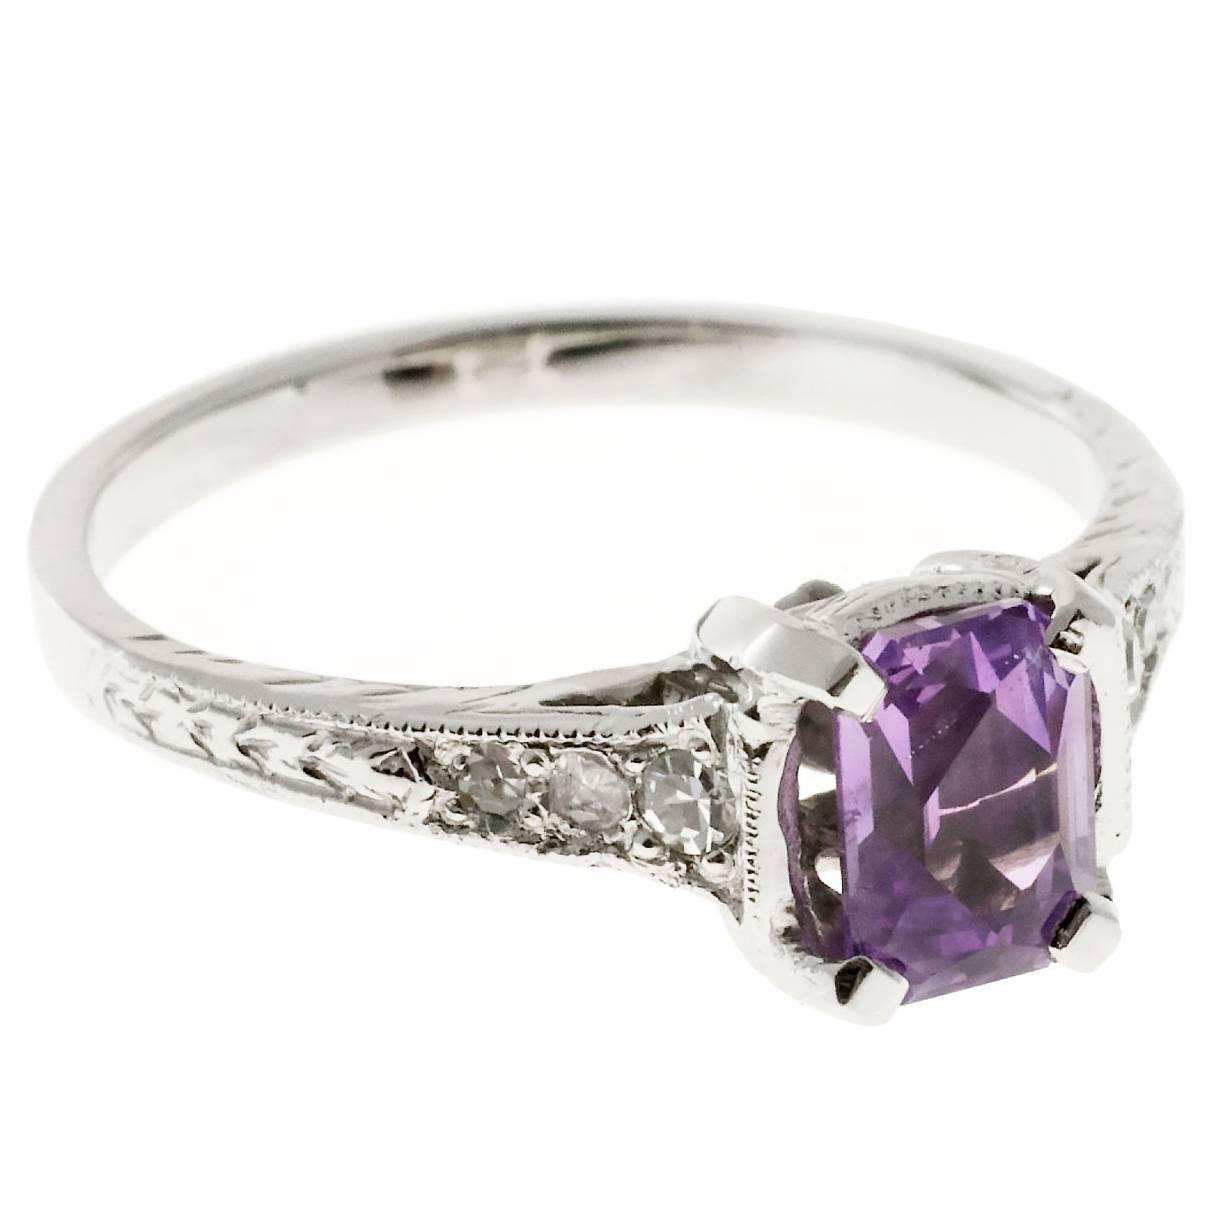 j id d org sale purple jewelry ring diamond sapphire rings for z at octagon platinum engagement